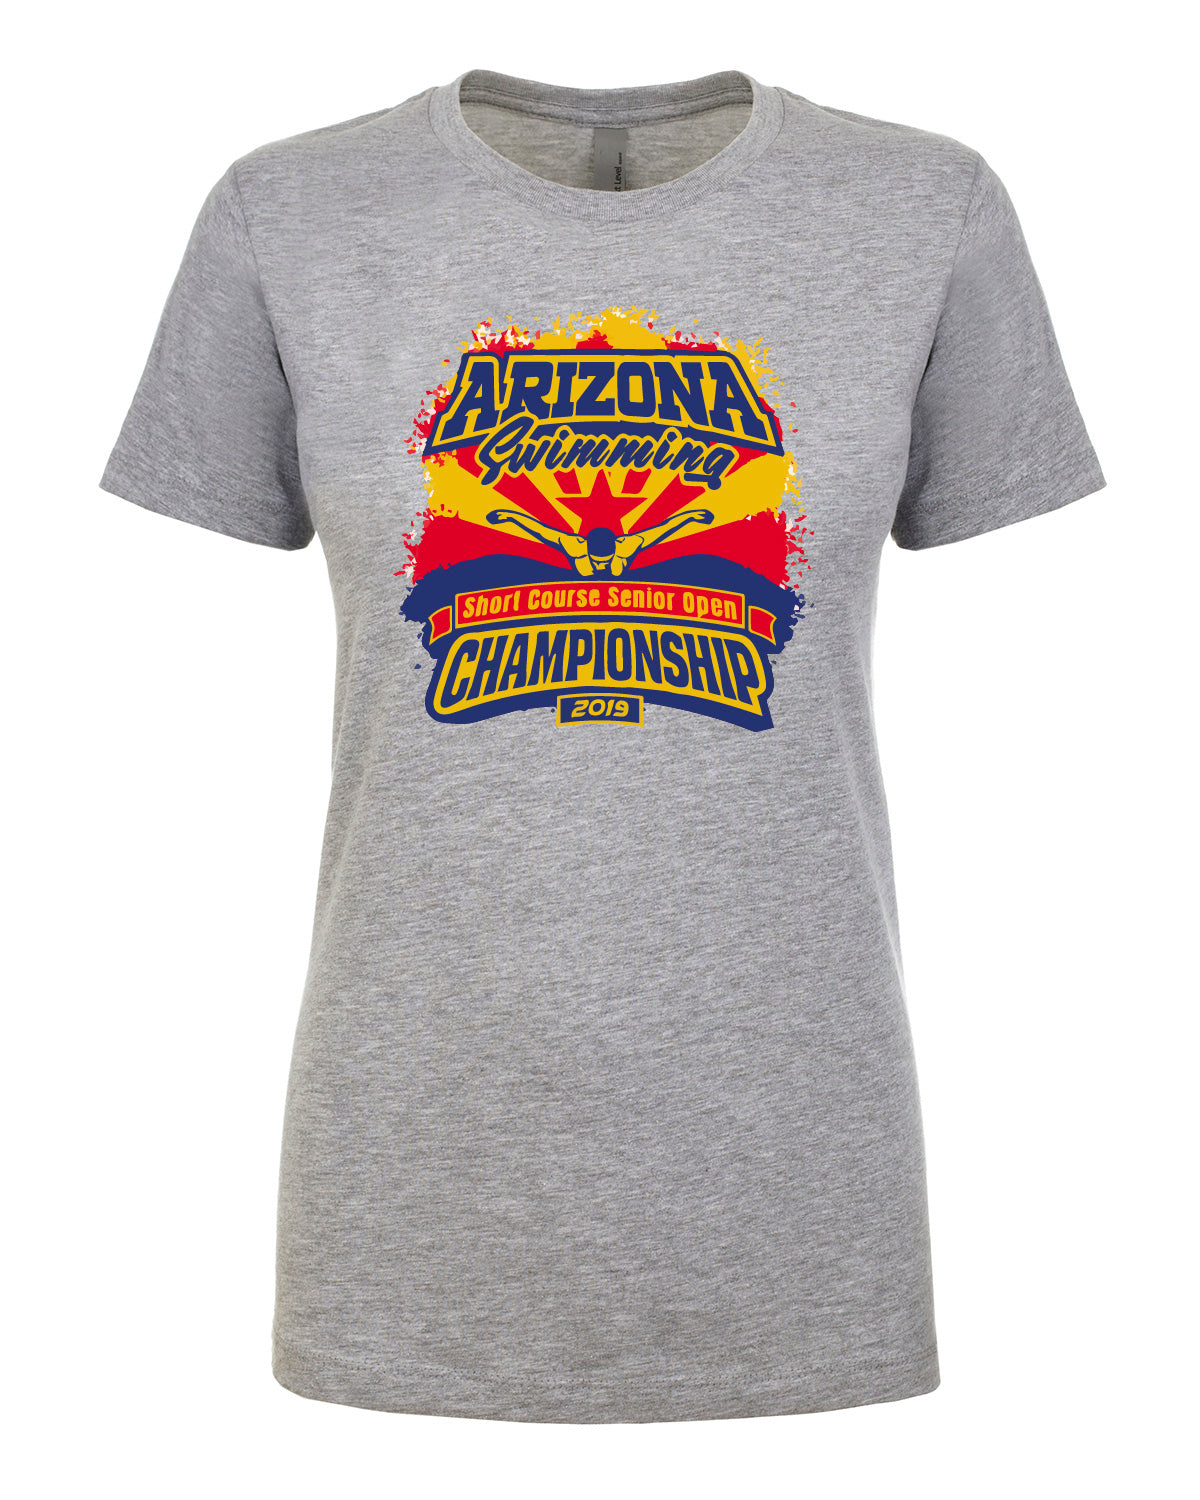 Arizona Ladies Ideal T-shirt